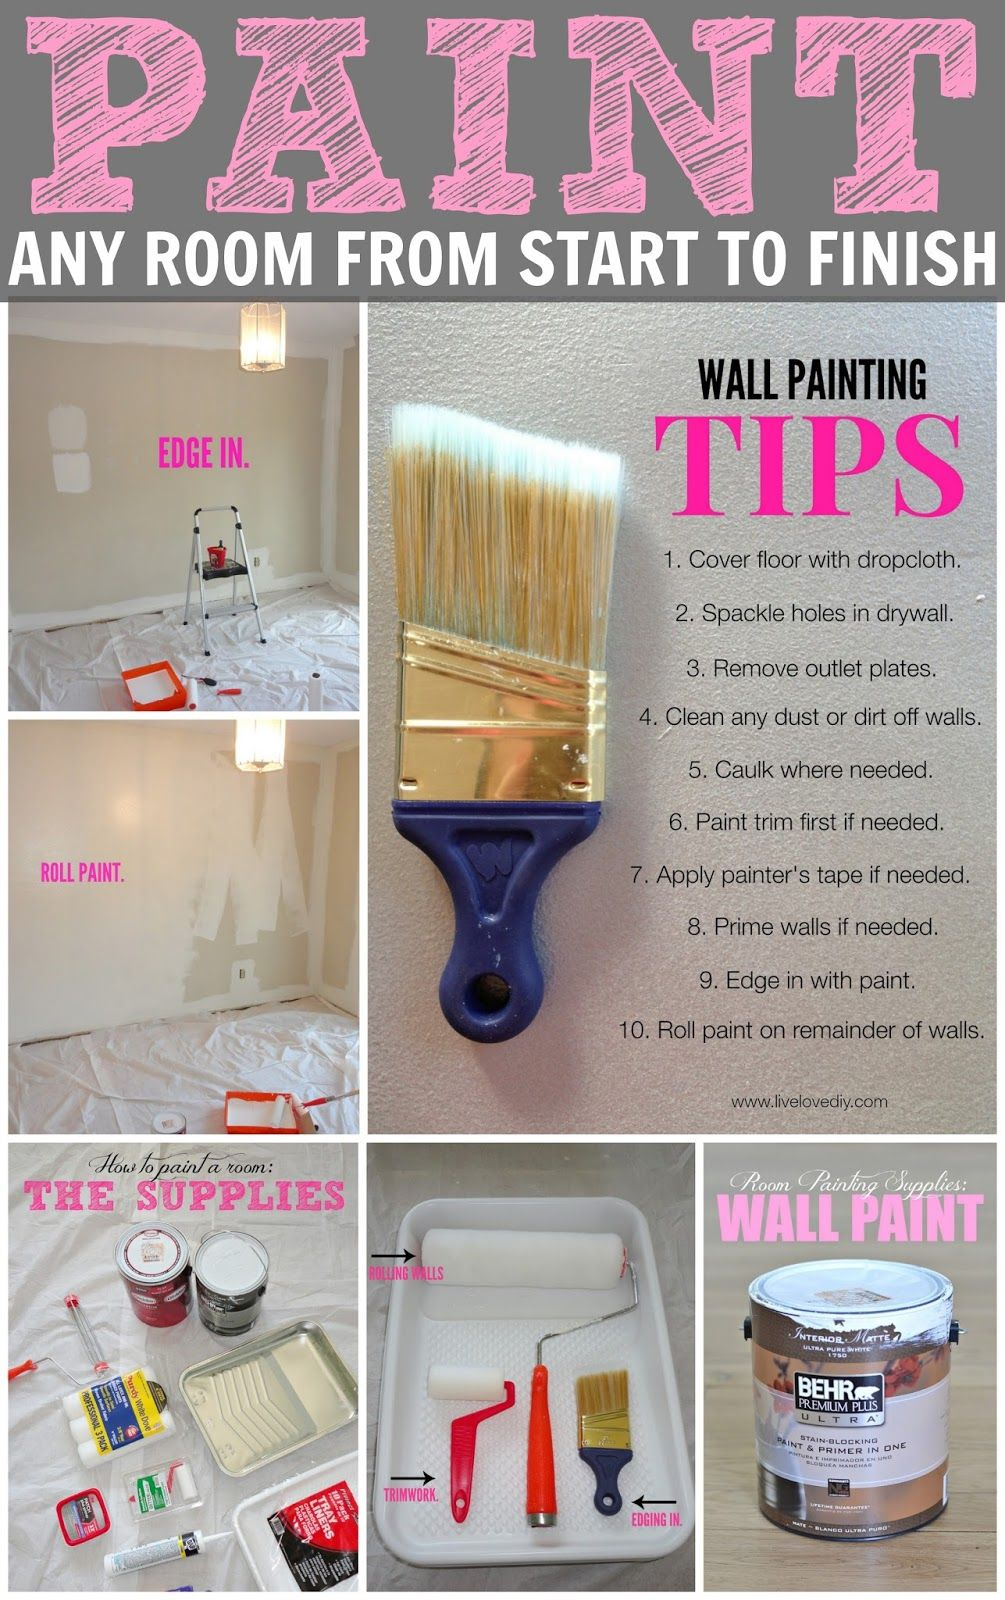 Tools needed to paint a room - Some Good Ideas For Painting Your Home How To Paint A Room In 10 Easy Steps A Complete Tutorial With Everything You Need To Know Including What Products